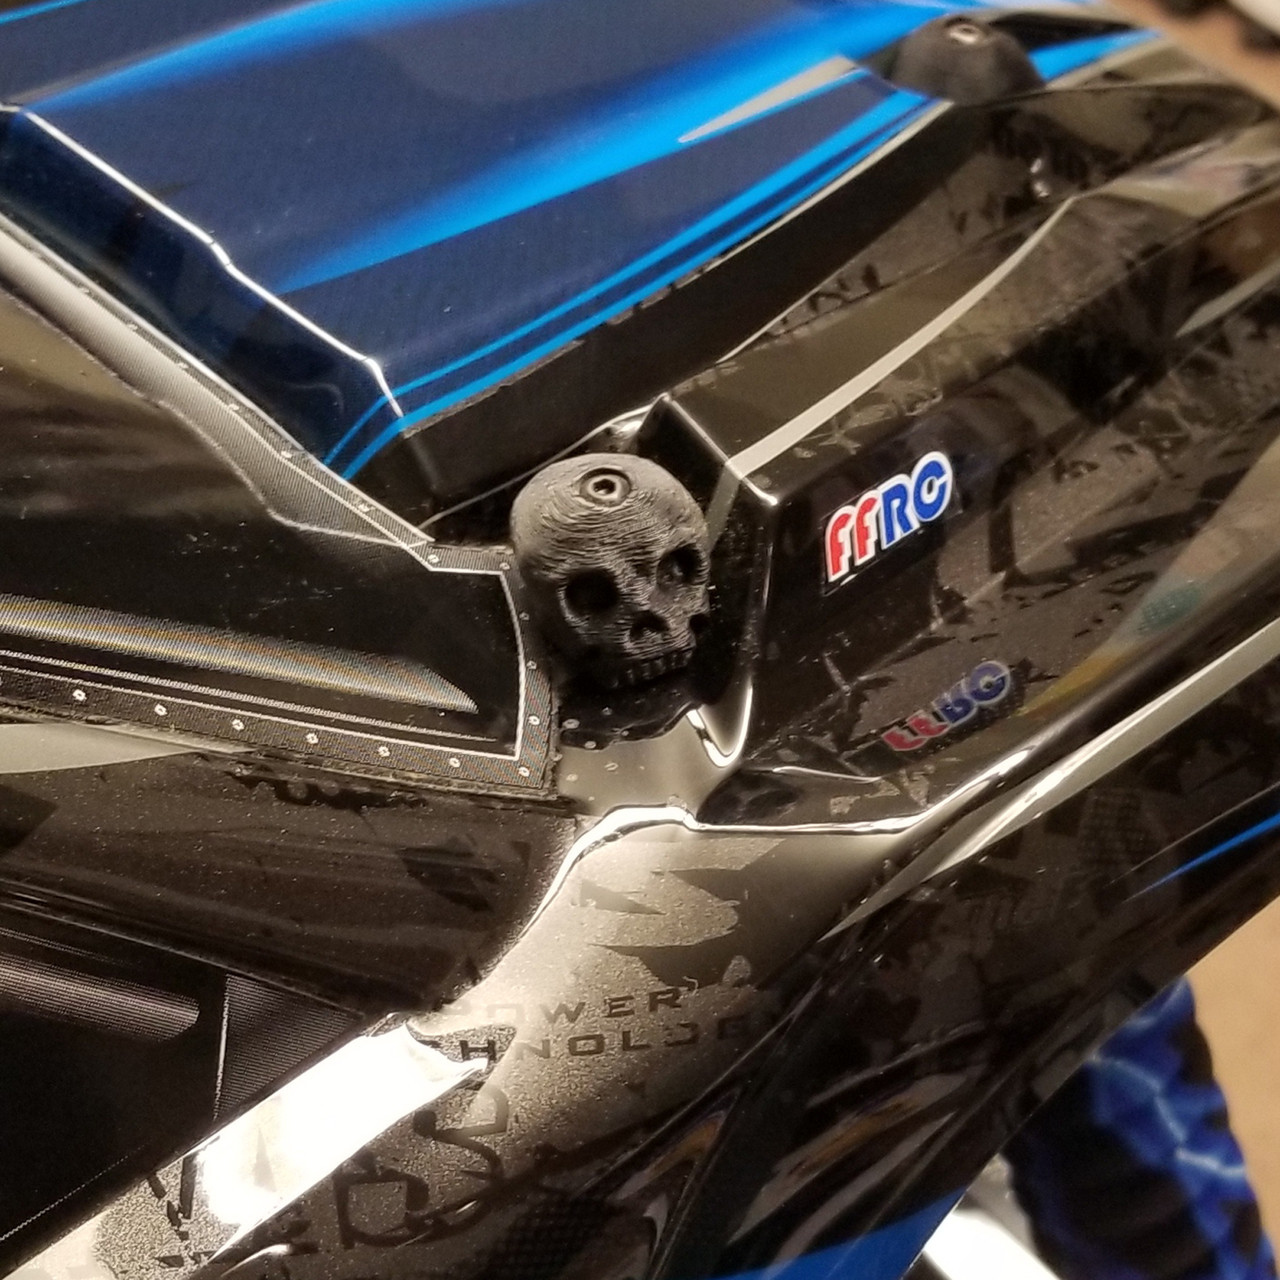 X-MAXX Skull Body washers by Fullforce RC.  Showing the Driver side in Back.